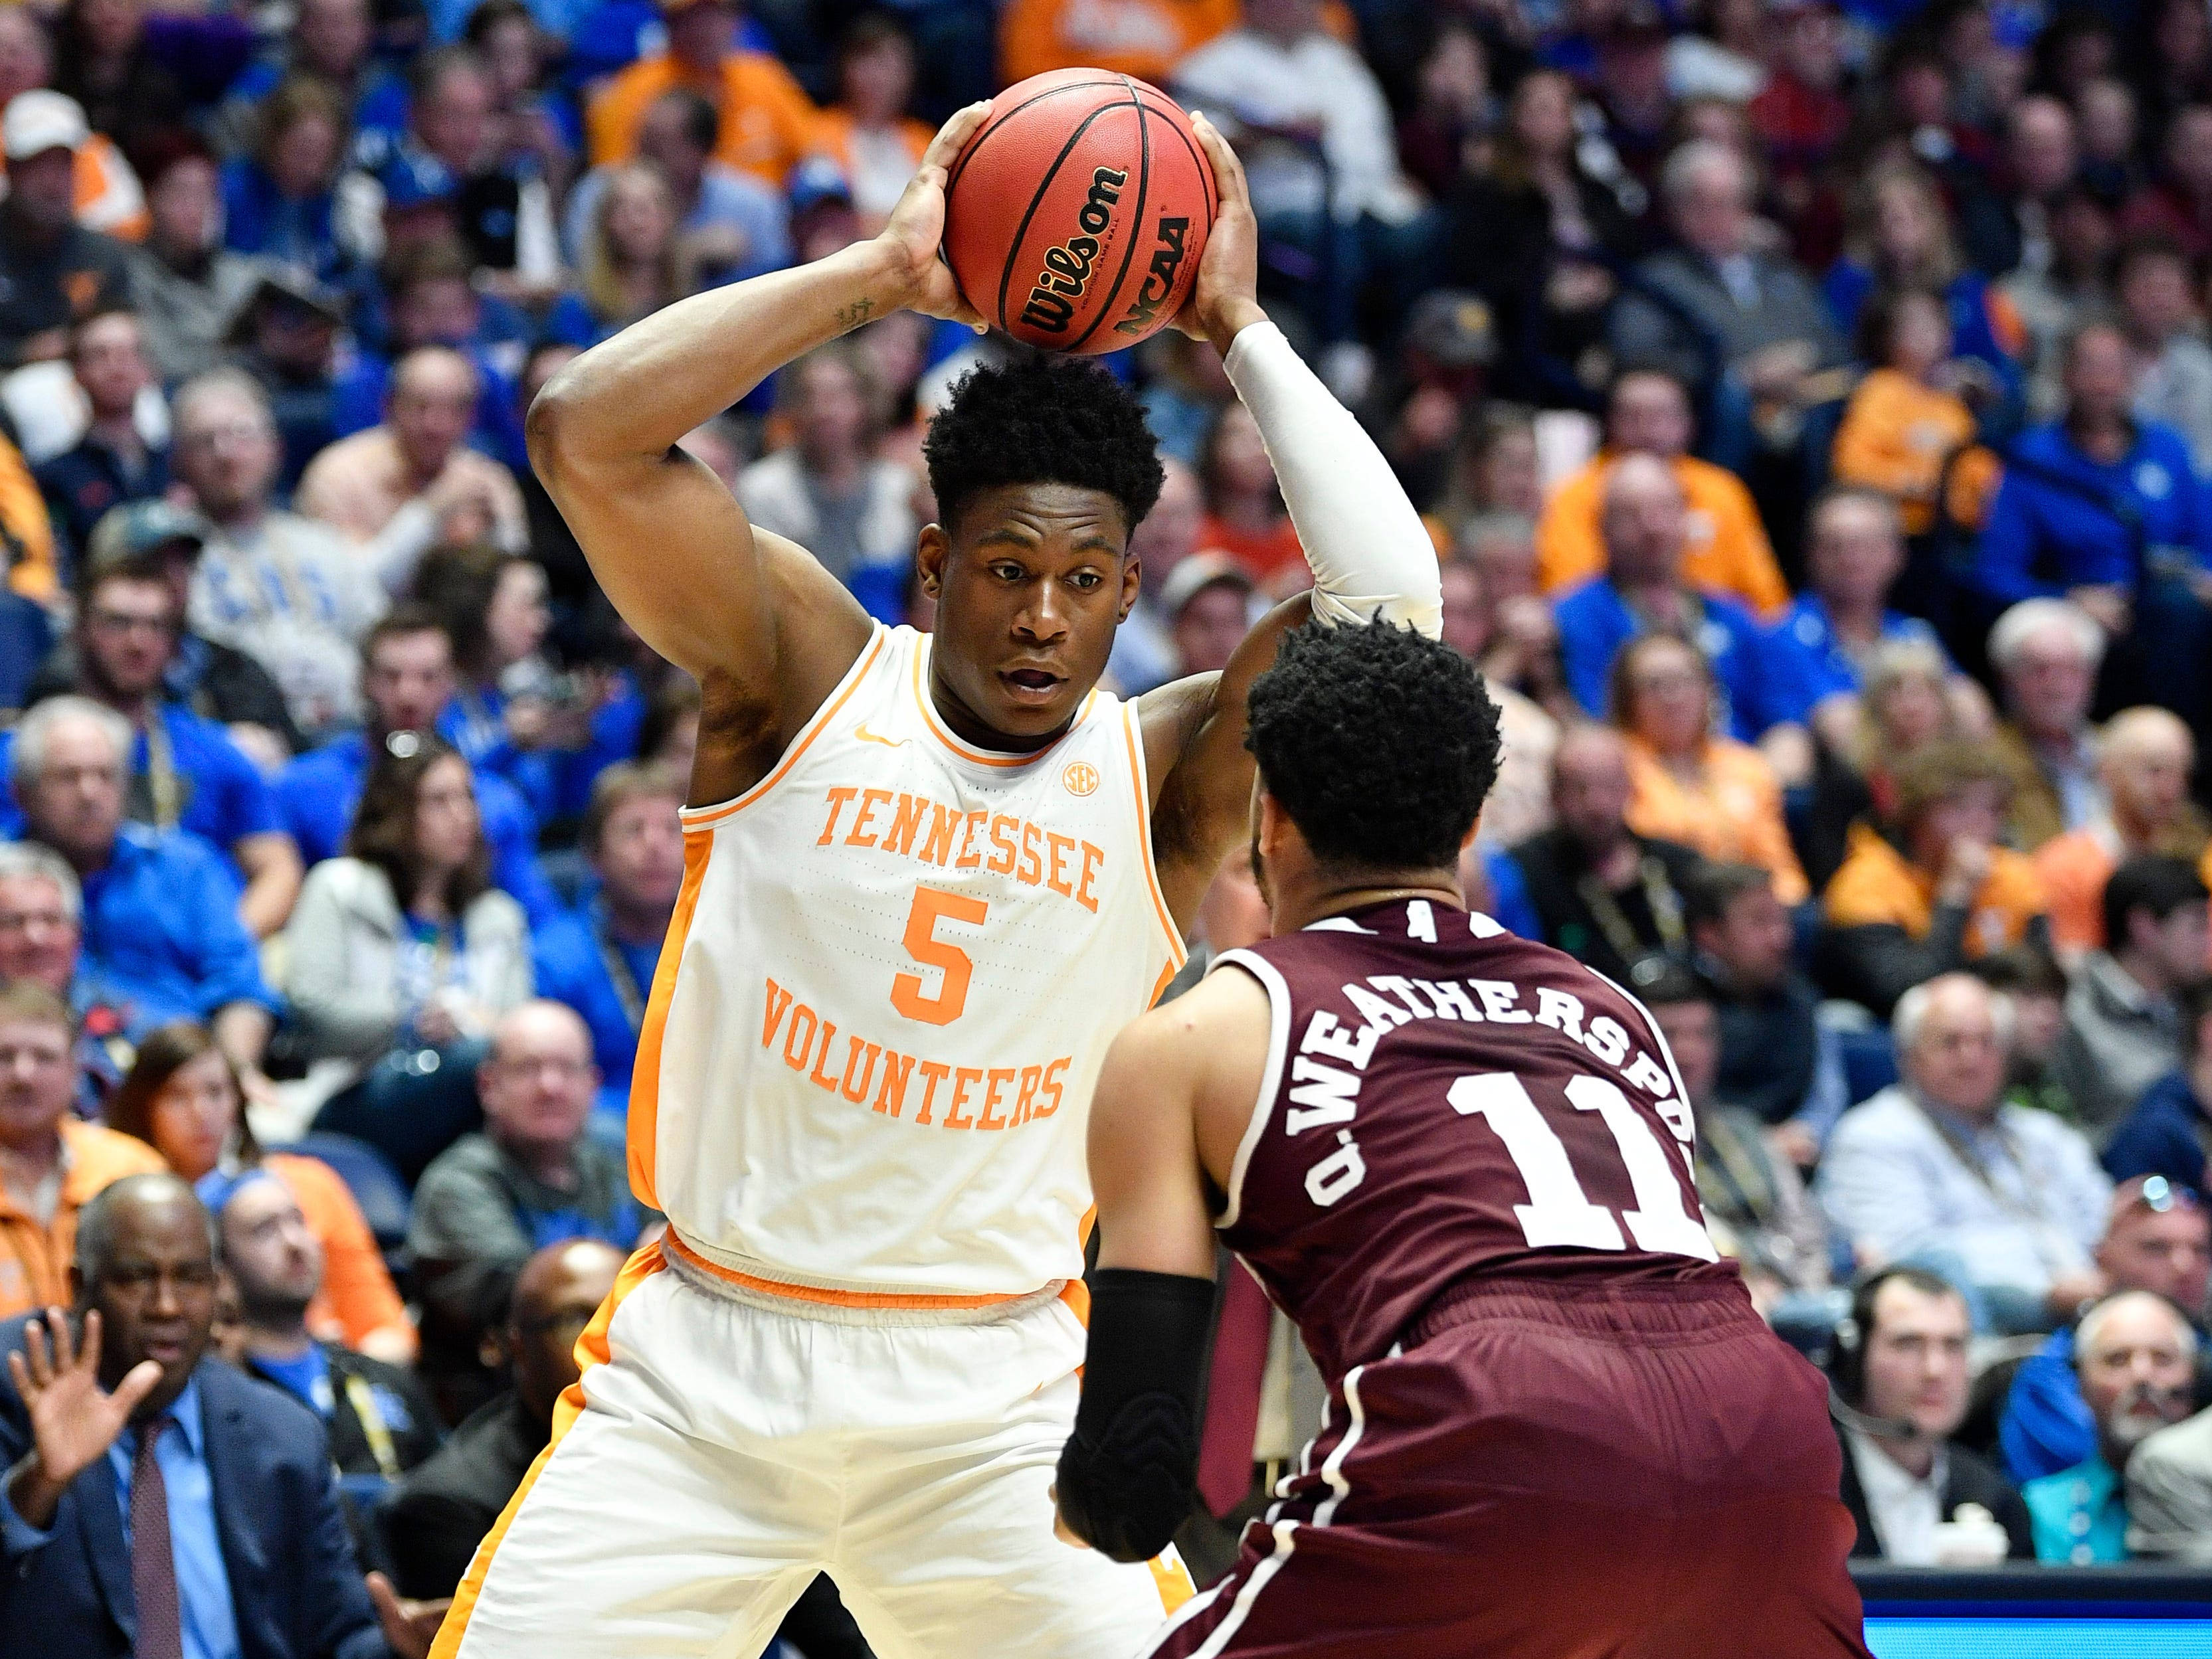 Tennessee guard Admiral Schofield (5) tries to move the ball defended by Mississippi State guard Quinndary Weatherspoon (11) during the first half of the SEC Men's Basketball Tournament game at Bridgestone Arena in Nashville, Tenn., Friday, March 15, 2019.